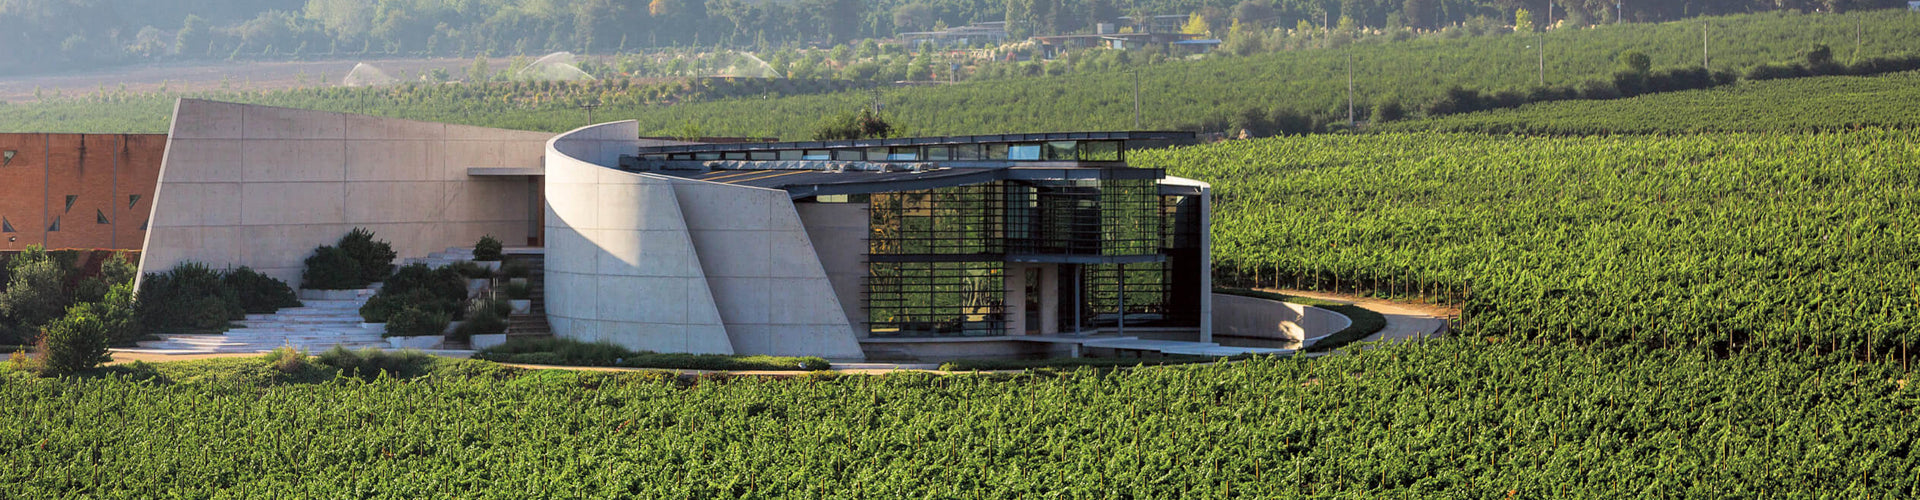 Viña Errazuriz Winery & Vineyards in Chile's Aconcagua Valley